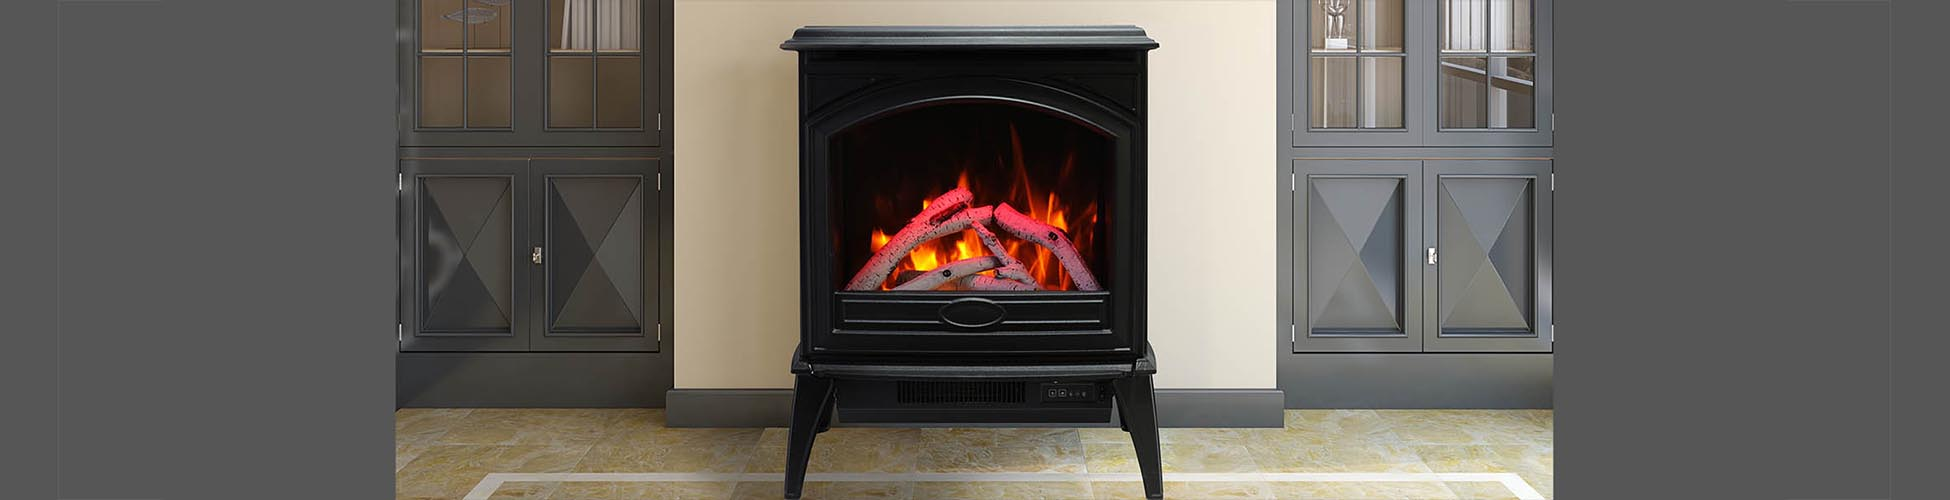 E-50 cast iron electric fireplace